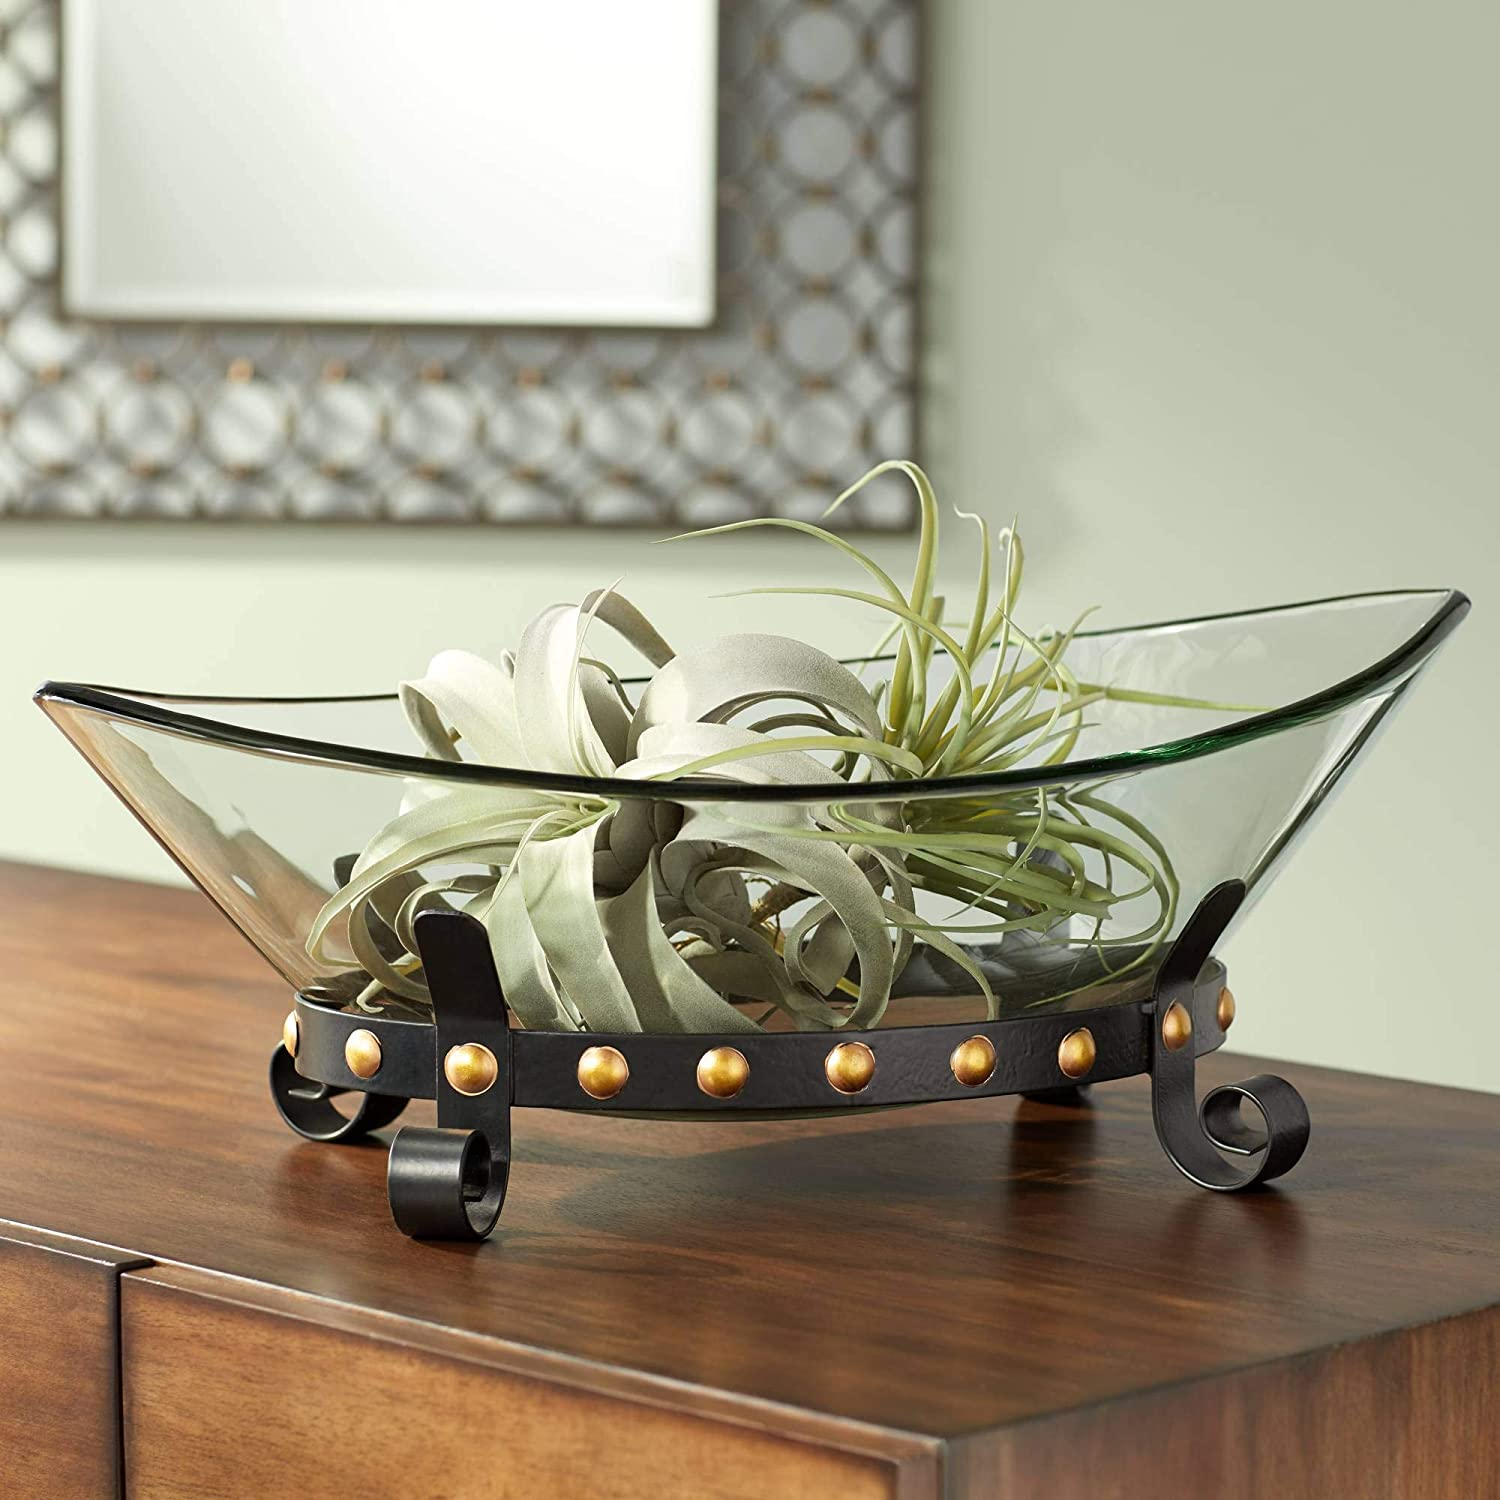 "Kensington Hill Rayden 23 1/4"" Wide Decorative Glass Bowl with Studded Base"